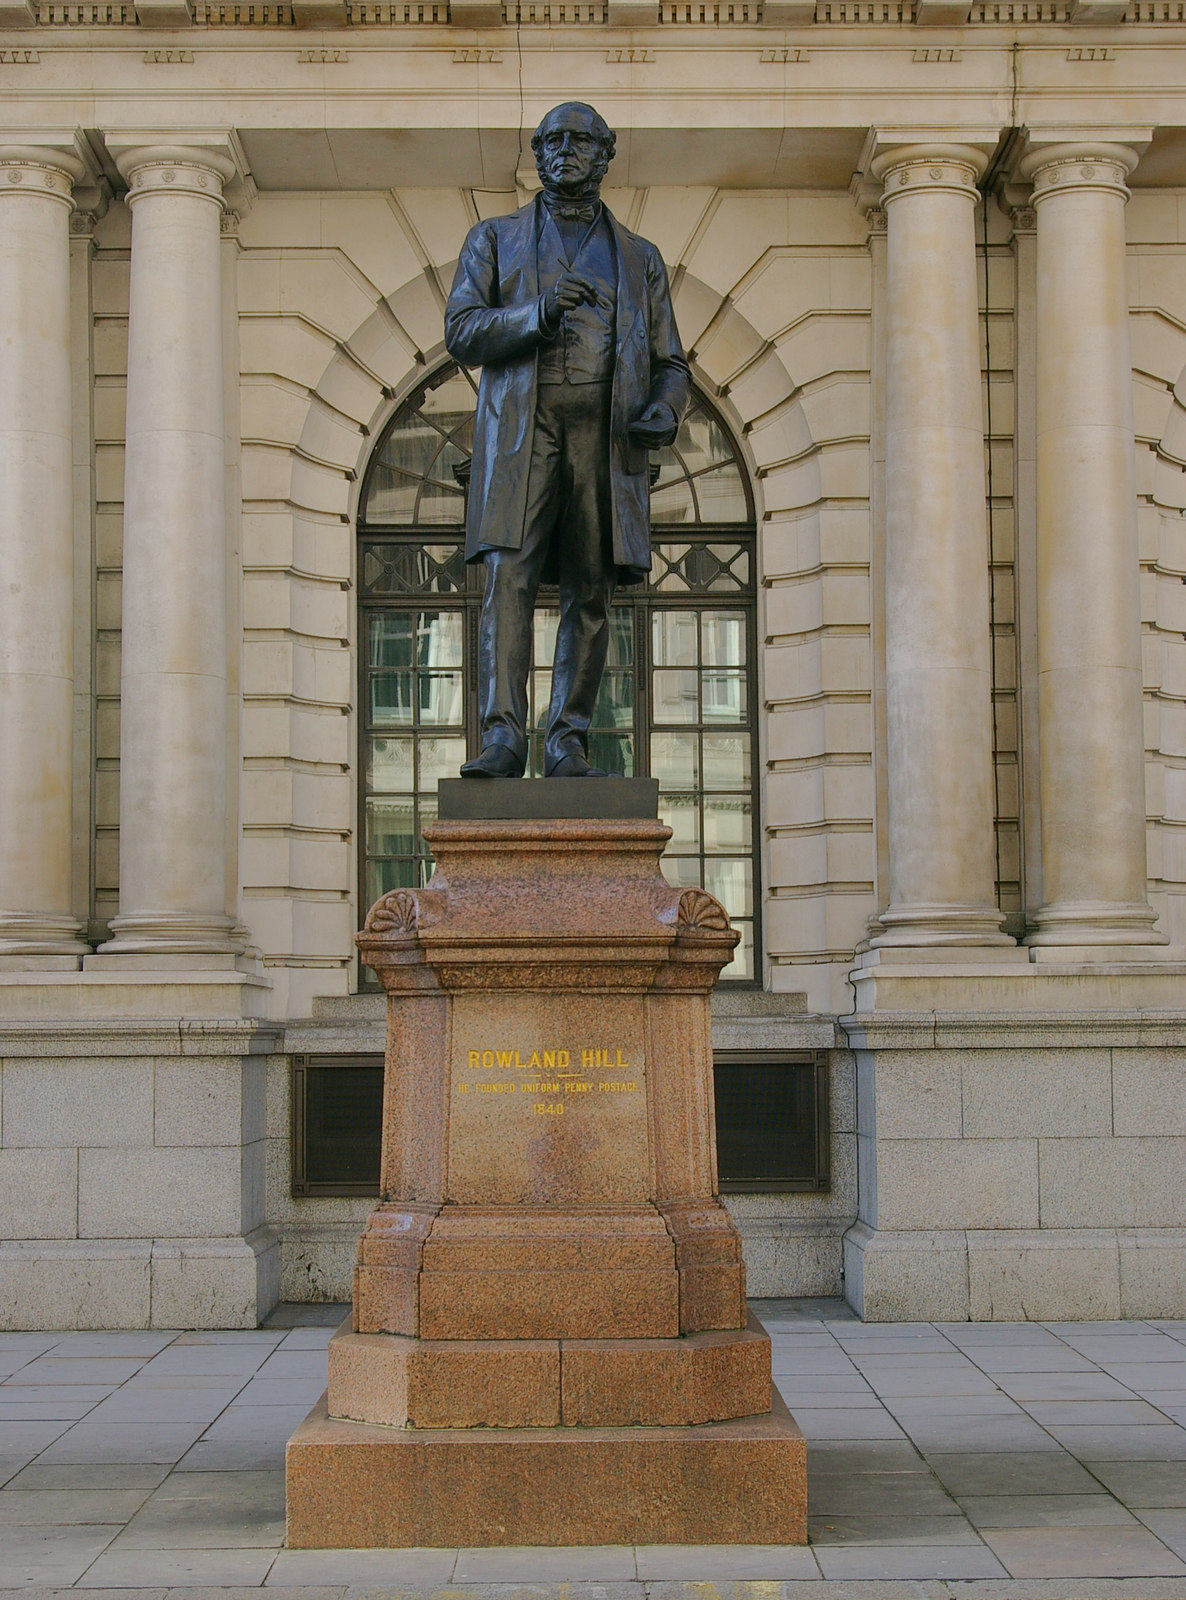 Statue of Sir Rowland Hill outside the former General Post Office (King Edward Building), City of London. Photo taken on October 1, 2009.